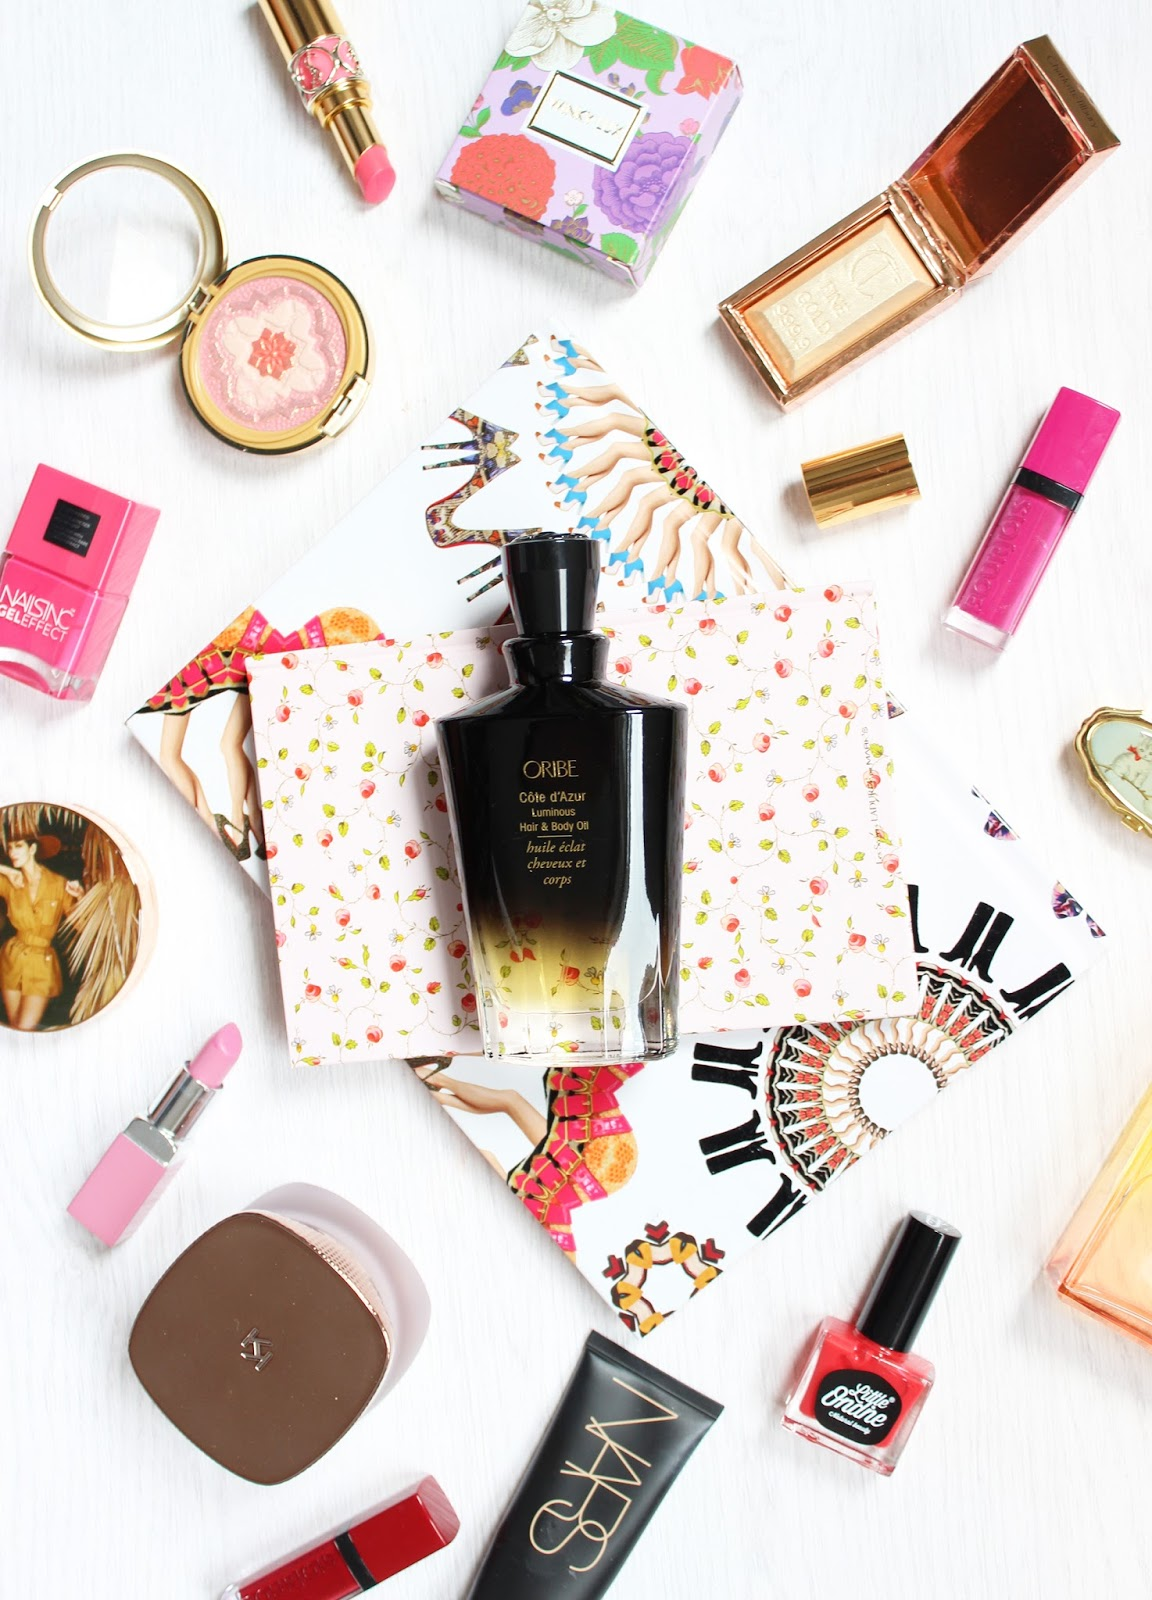 Oribe Cote d'Azur Hair and Body Oil review